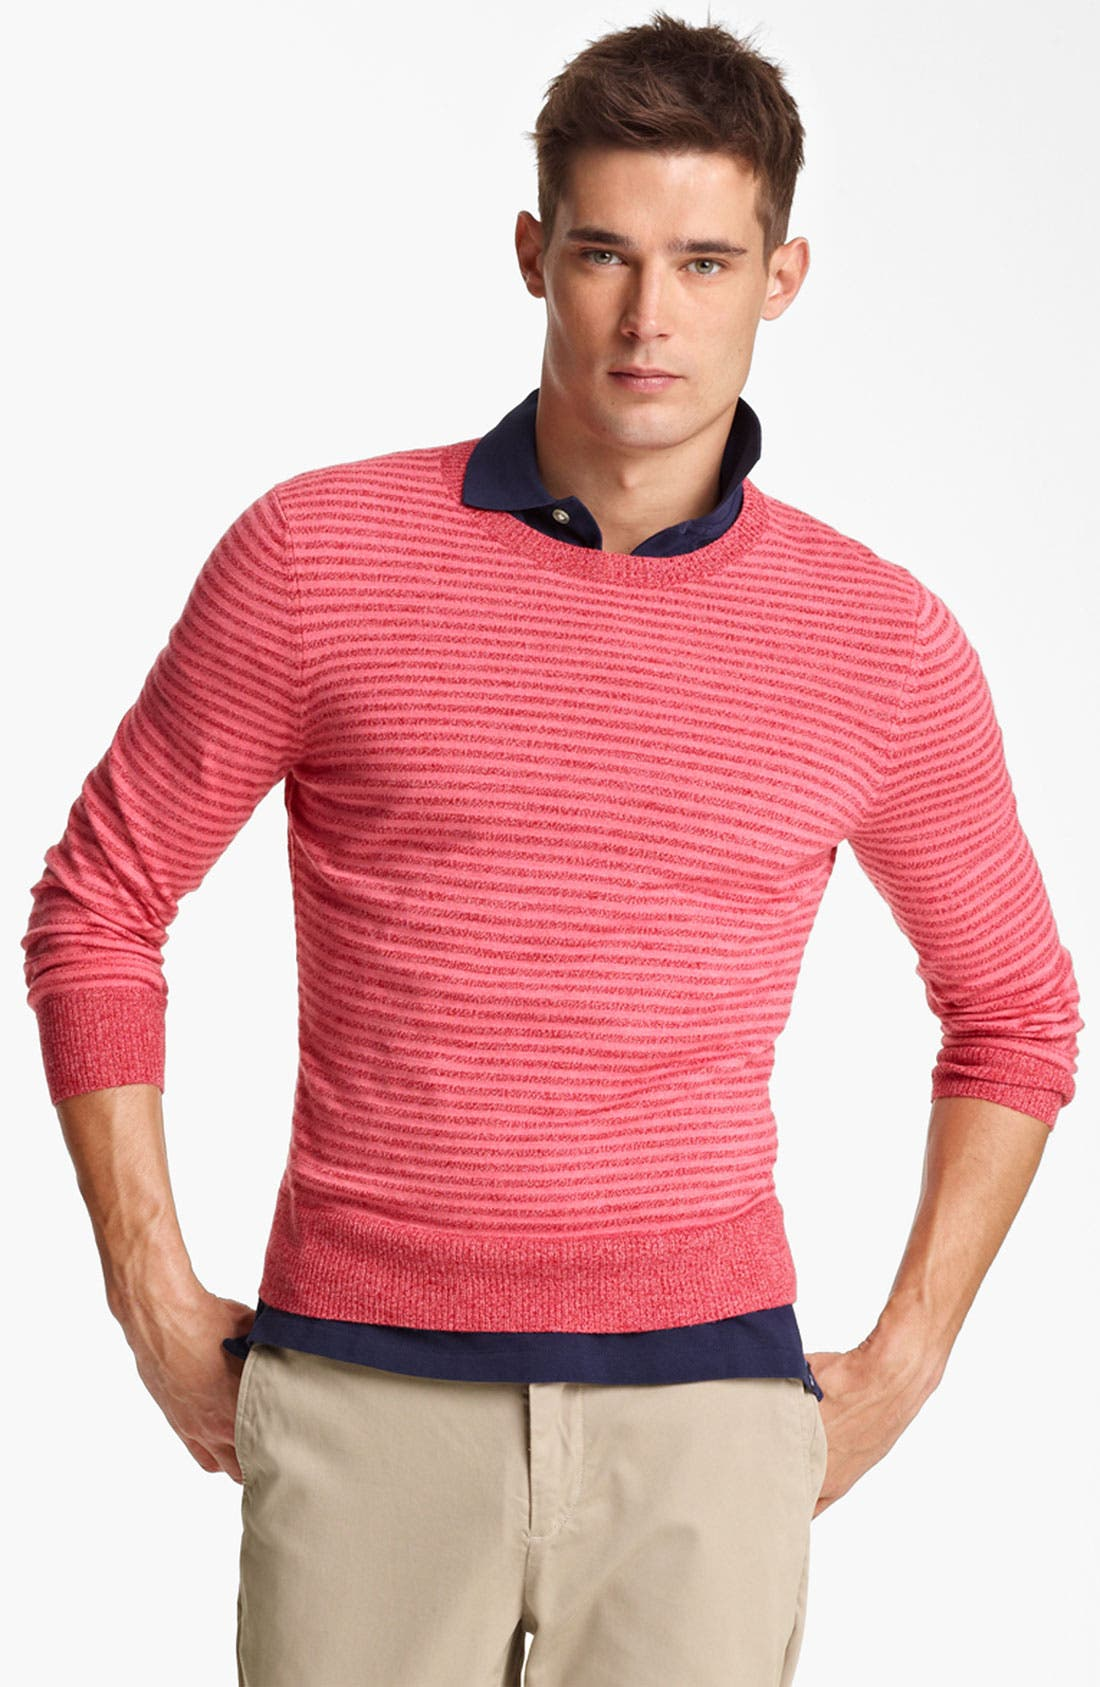 Alternate Image 1 Selected - Jack Spade 'Judson' Stripe Merino Wool Crewneck Sweater